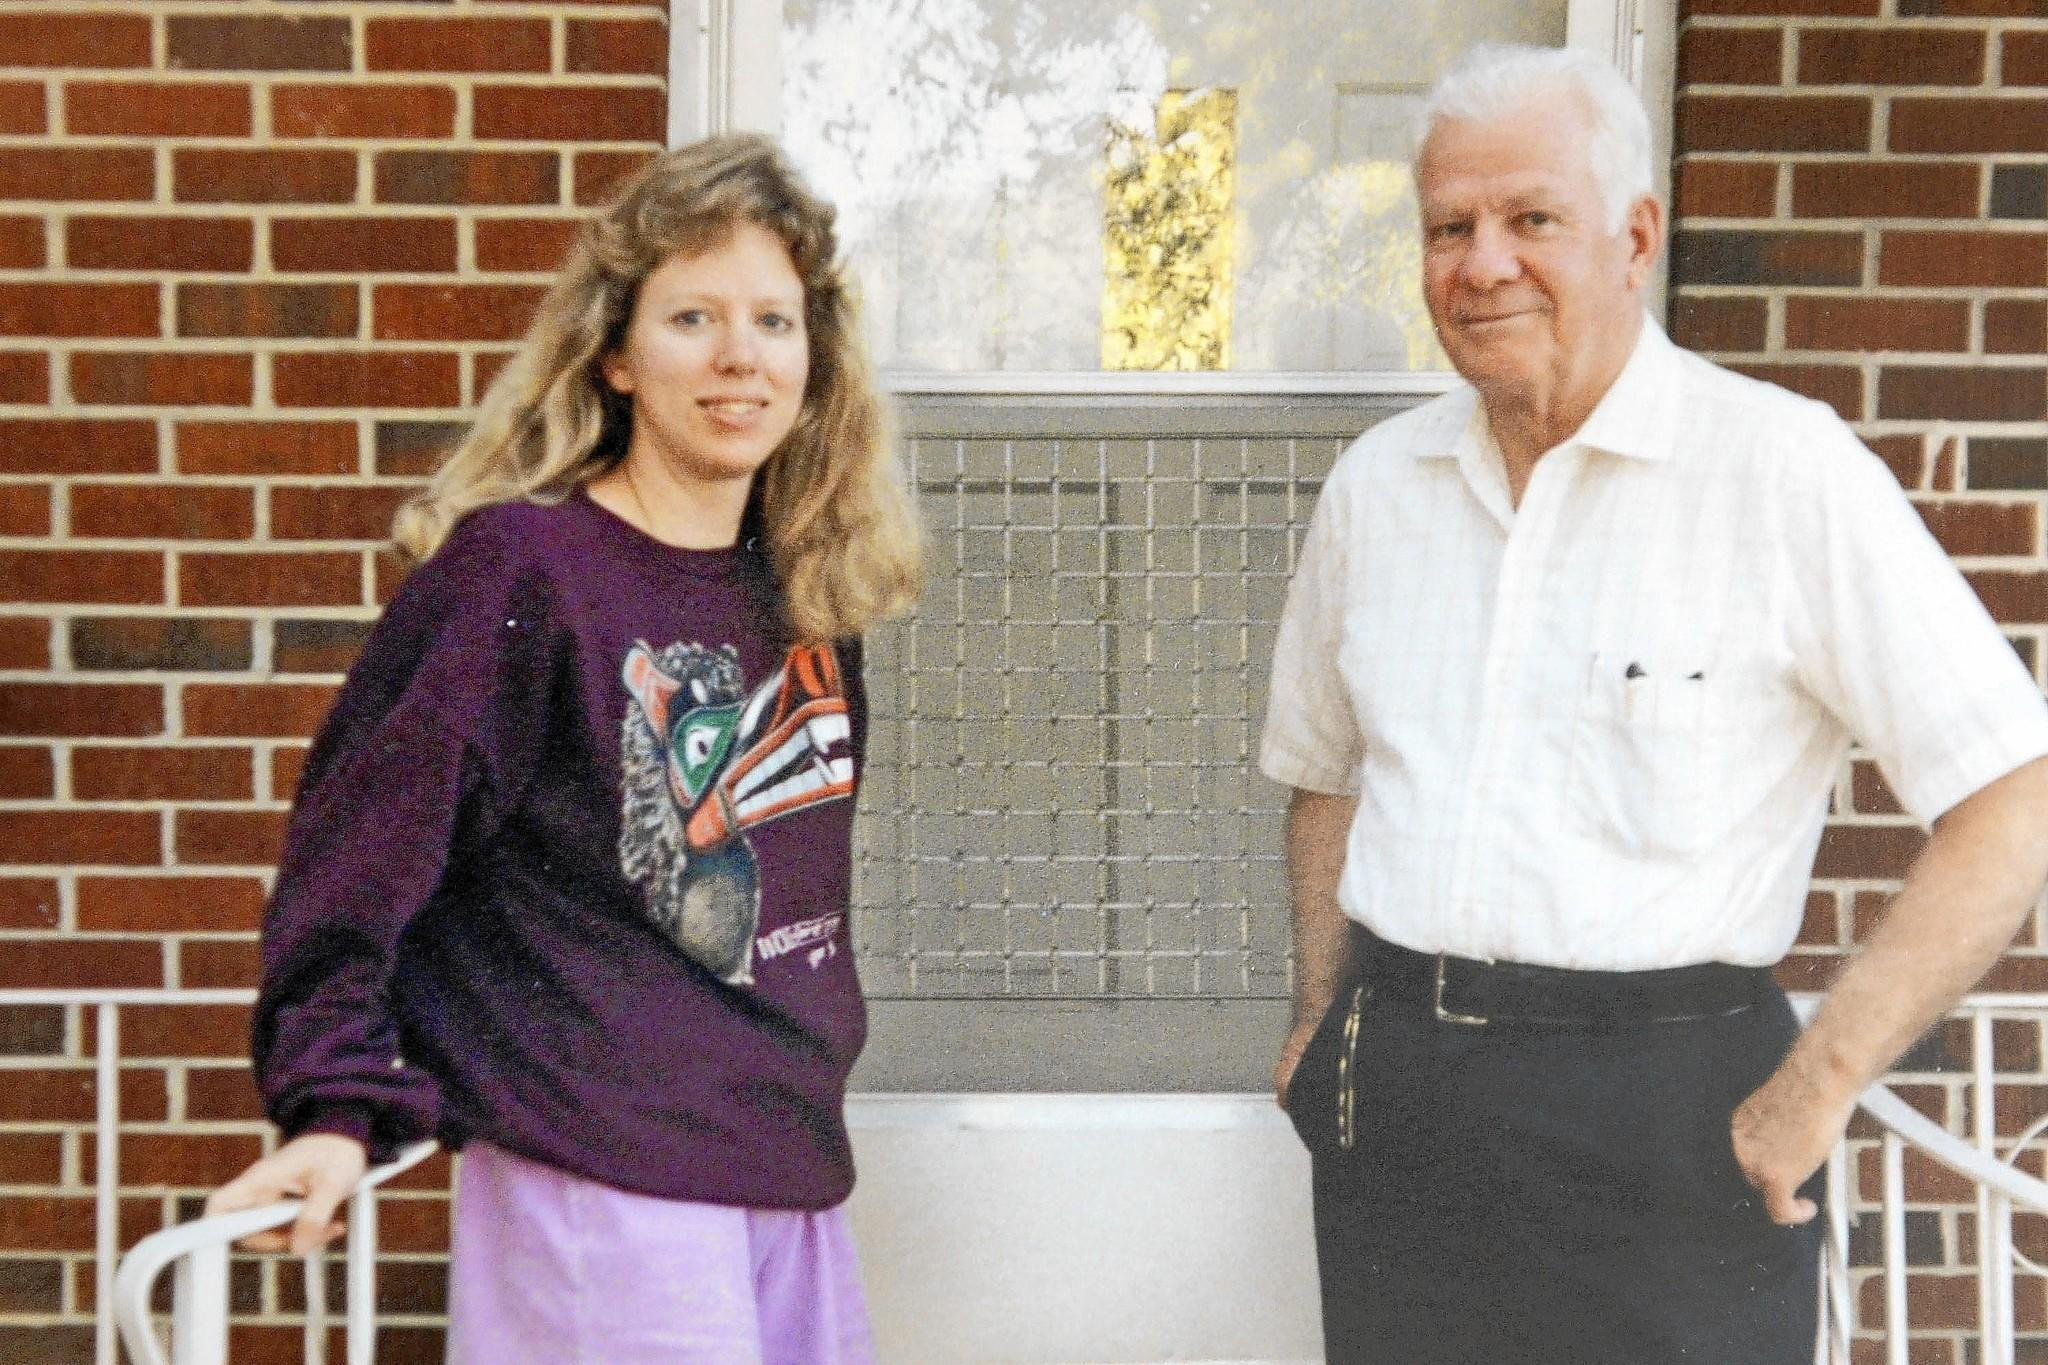 Barbara Mancini, shown in 1992 with her father, Joseph Yourshaw of Pottsville, was prosecuted for assisting in his 2013 suicide, but that case has been thrown out.